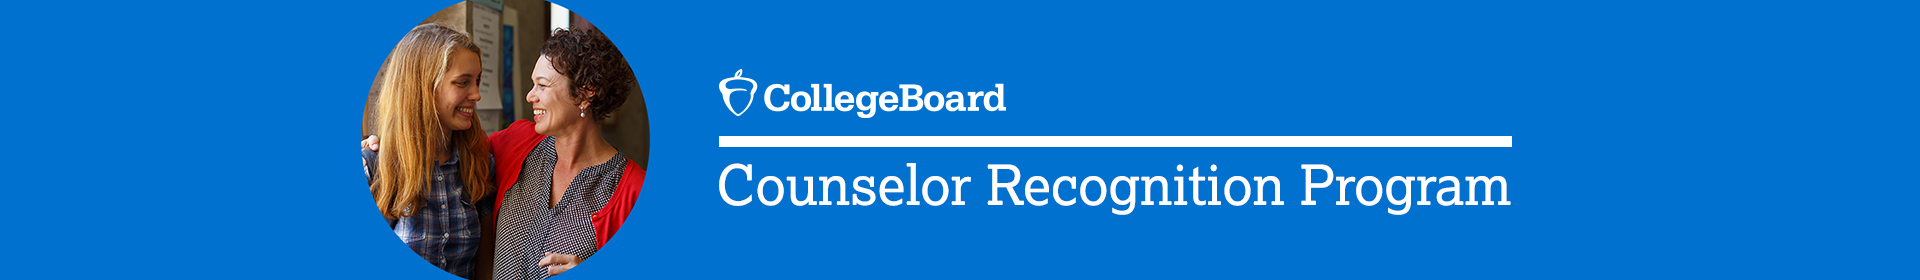 2021 College Board Counselor Recognition Program  Event Banner